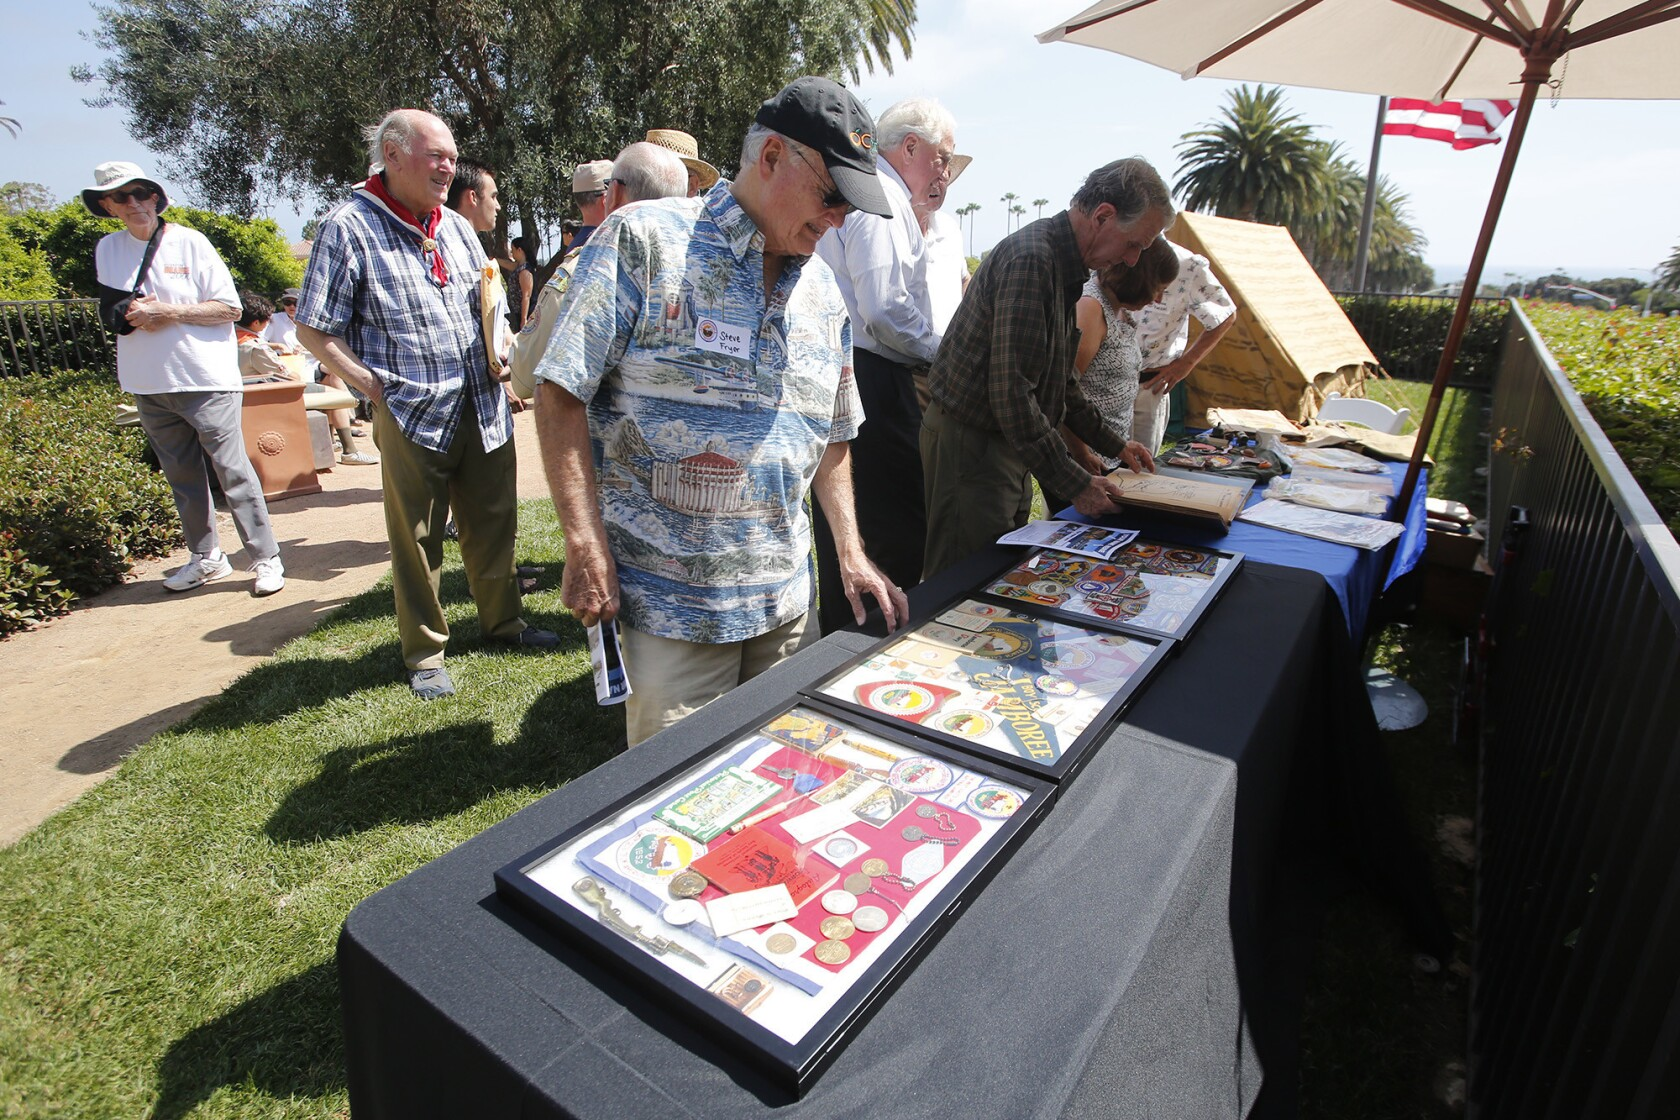 Once a Scout, always a Scout: 1953 Jamboree campers reunite